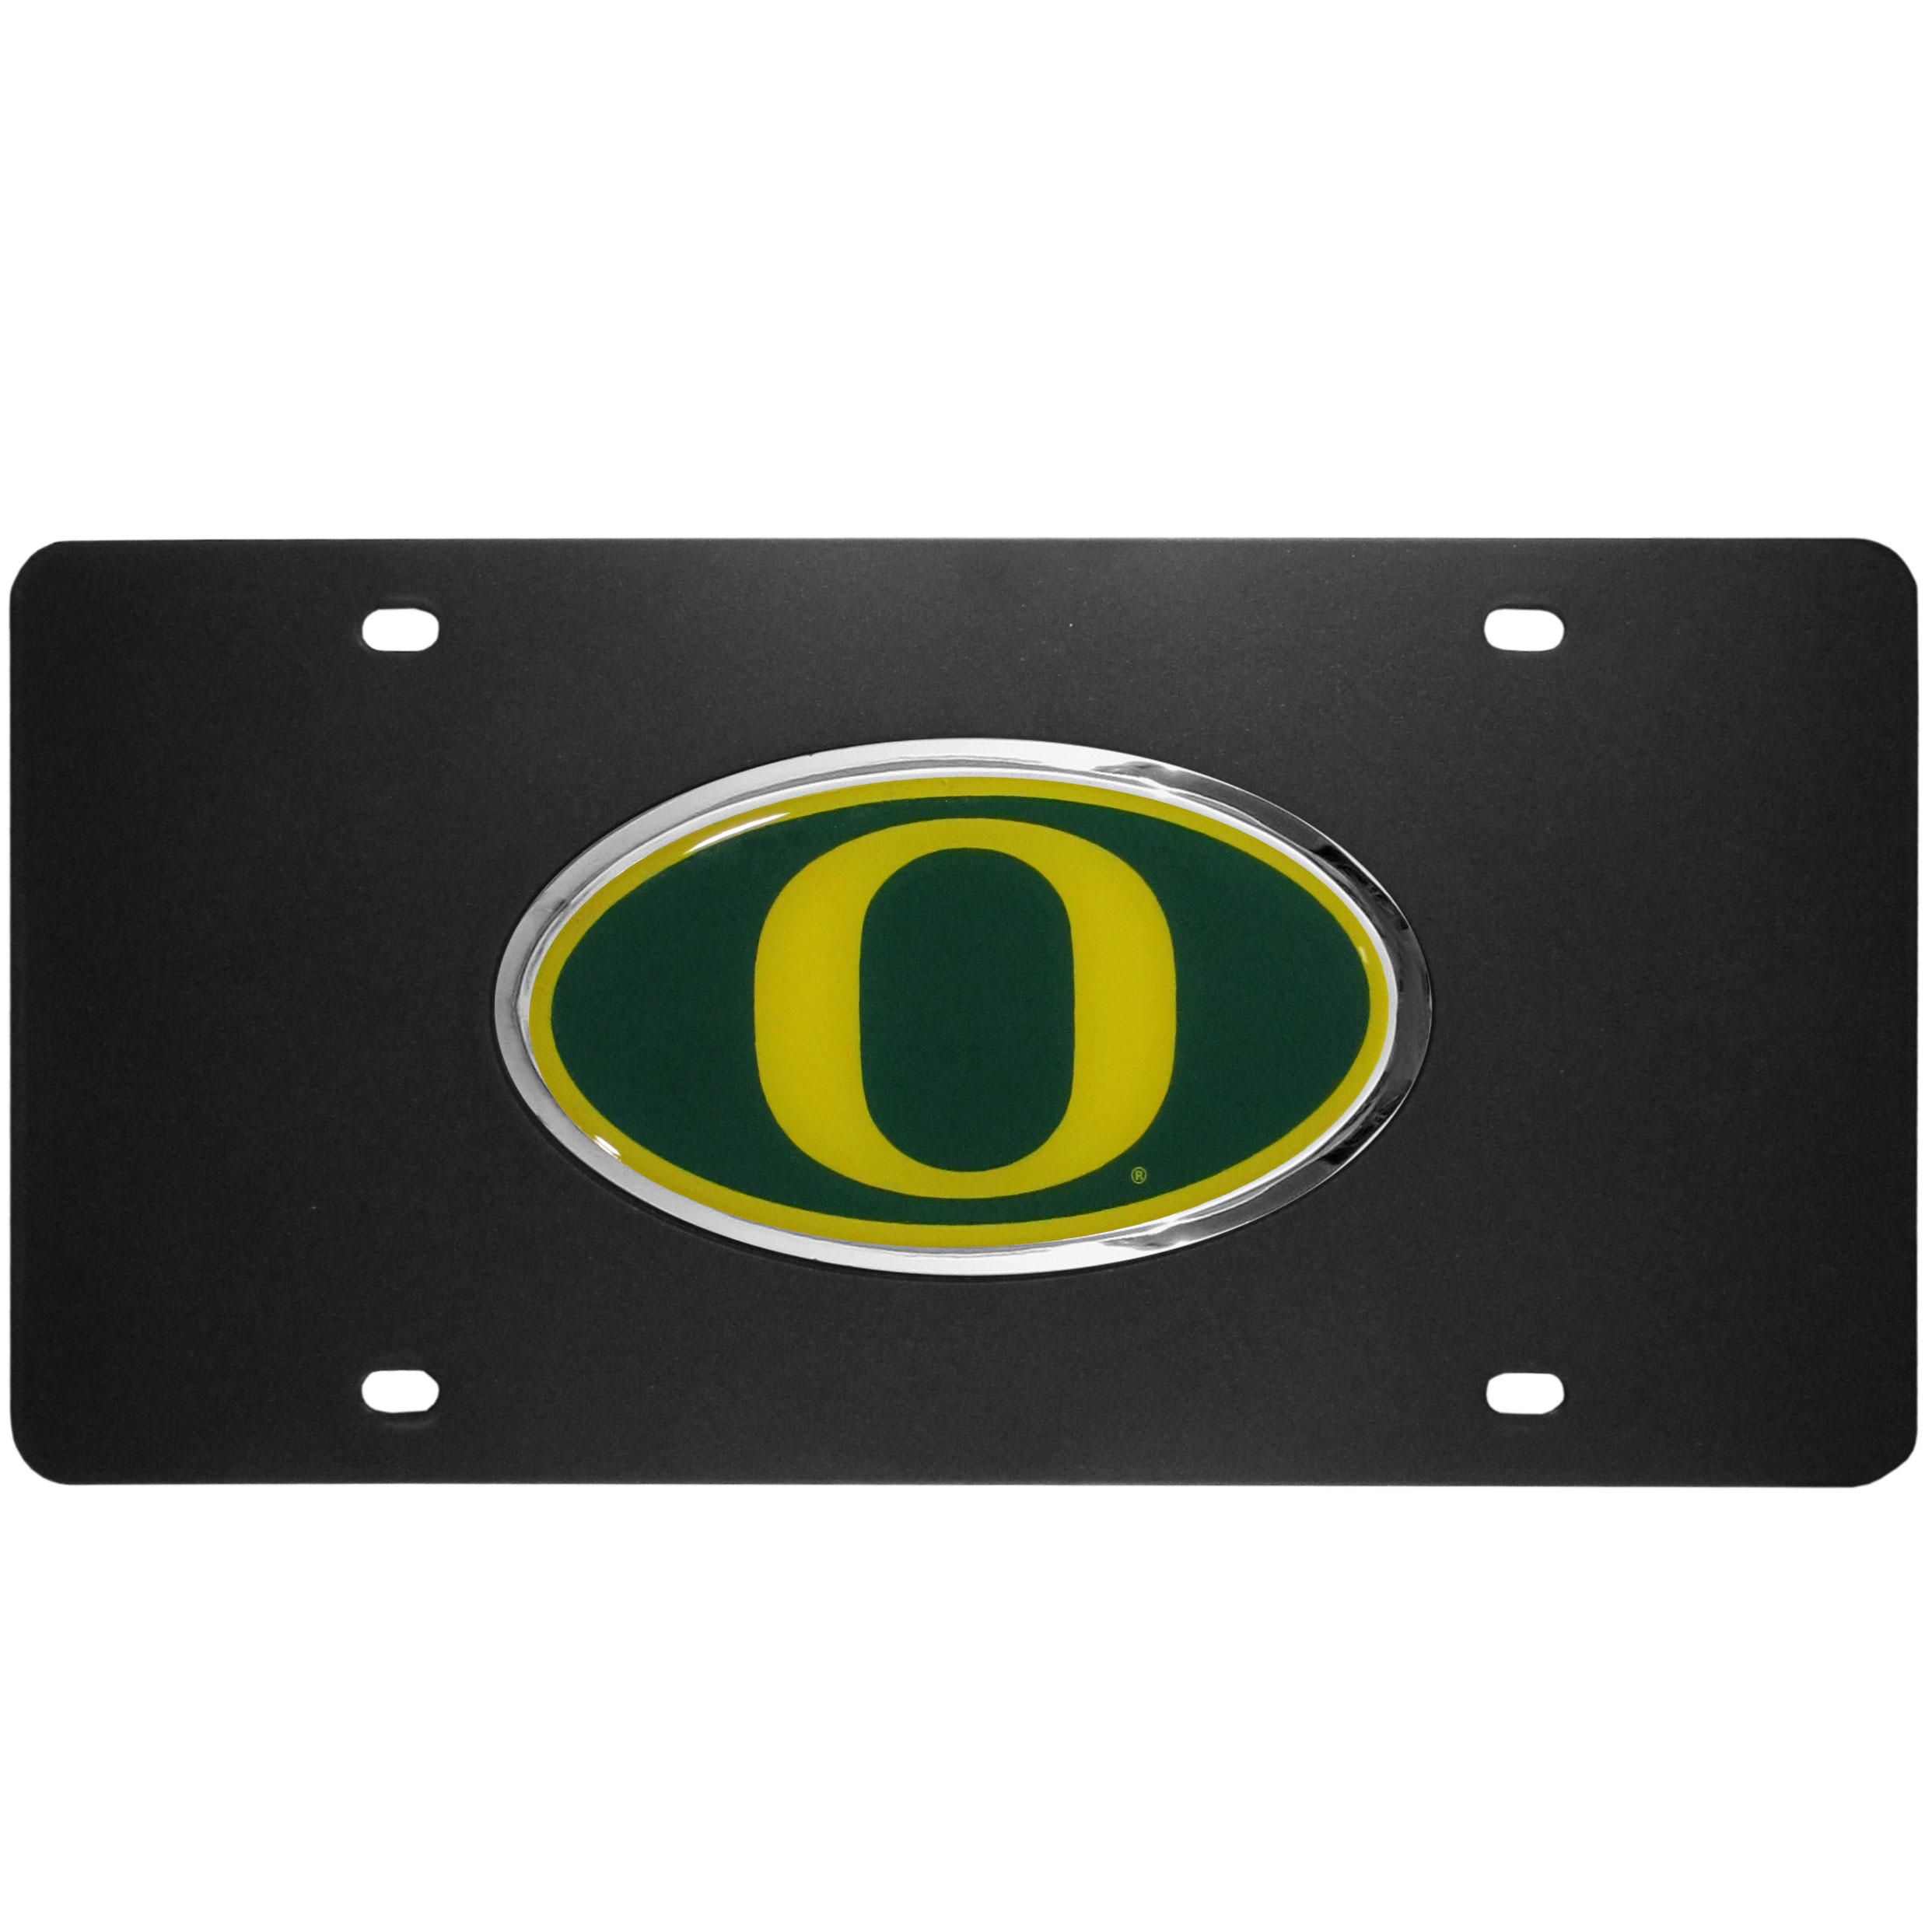 Oregon Ducks Acrylic License Plate - Our Oregon Ducks acrylic license plate is a step above the rest. It is made of thick, durable acrylic with a matte black finish and raised chrome saddle for the extra large team emblem.